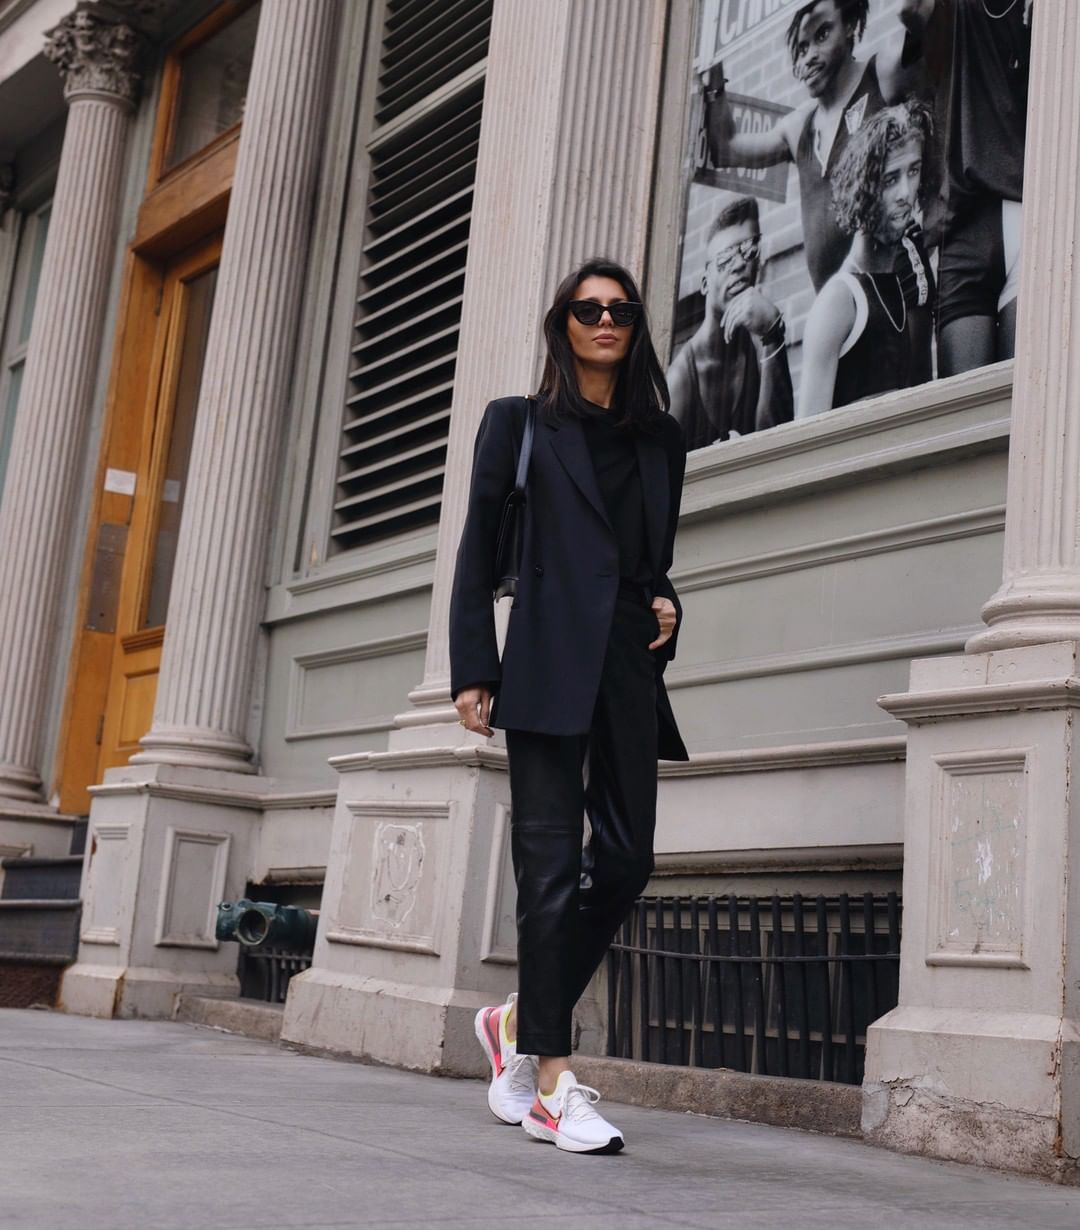 Elevate Your Sneakers With This Chic Outfit